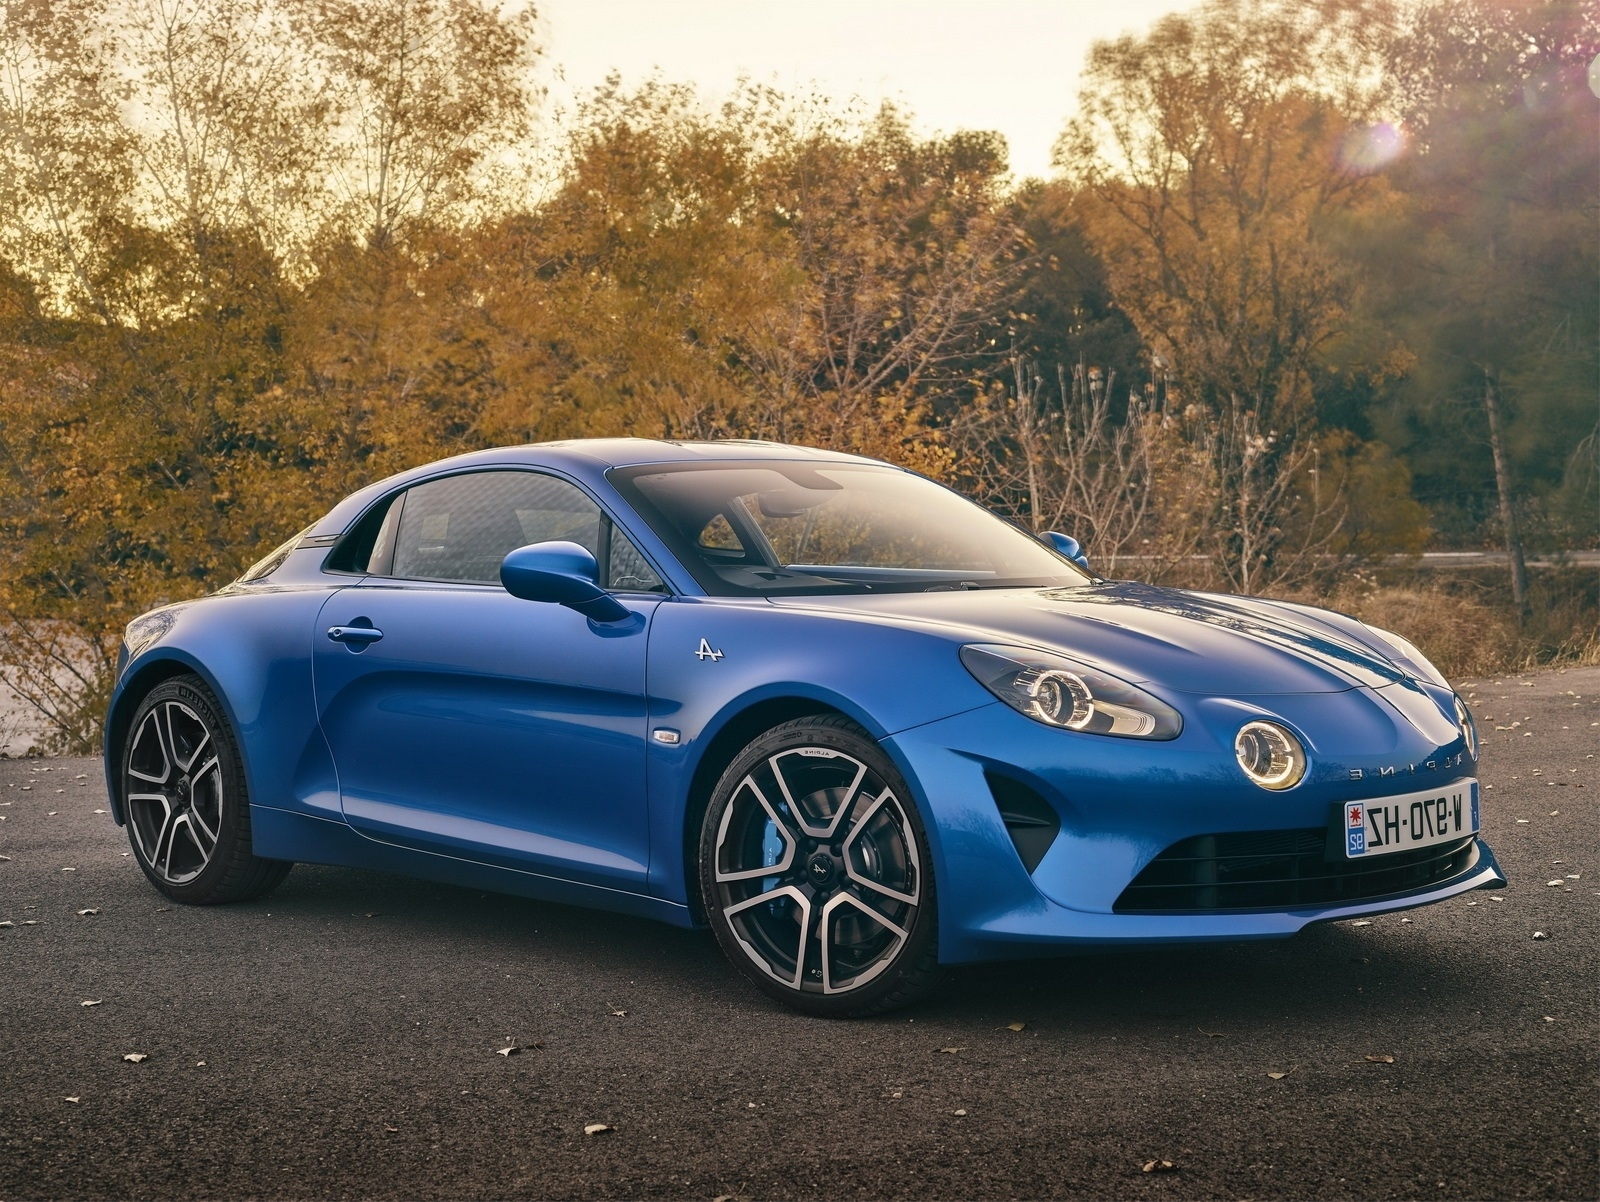 The French automaker will be releasing two production cars based on Renault chassis and another one based on a Lotus platform.